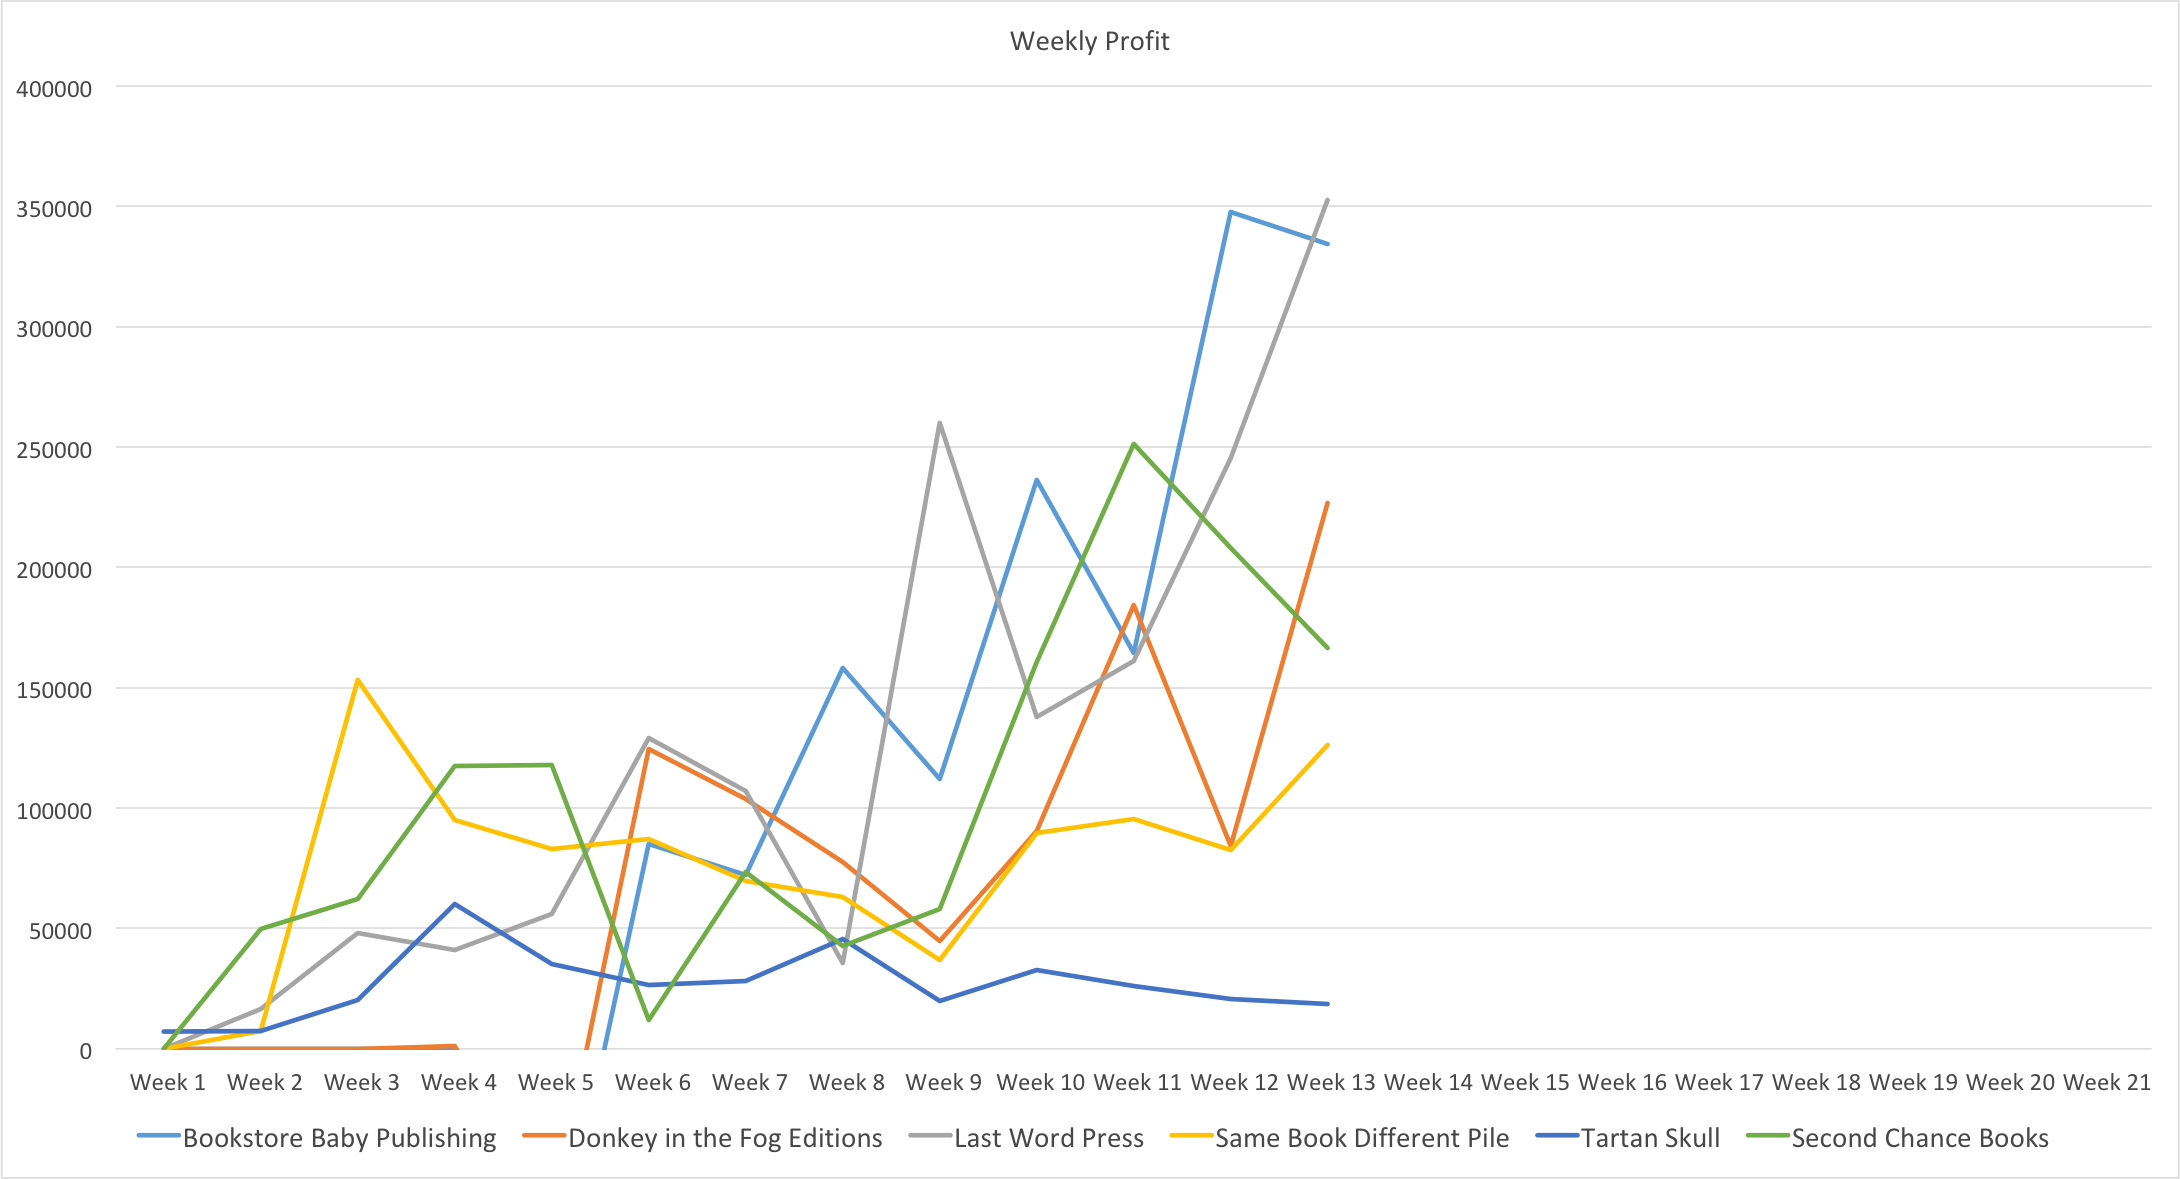 Graph of weekly profit for each publishing house.